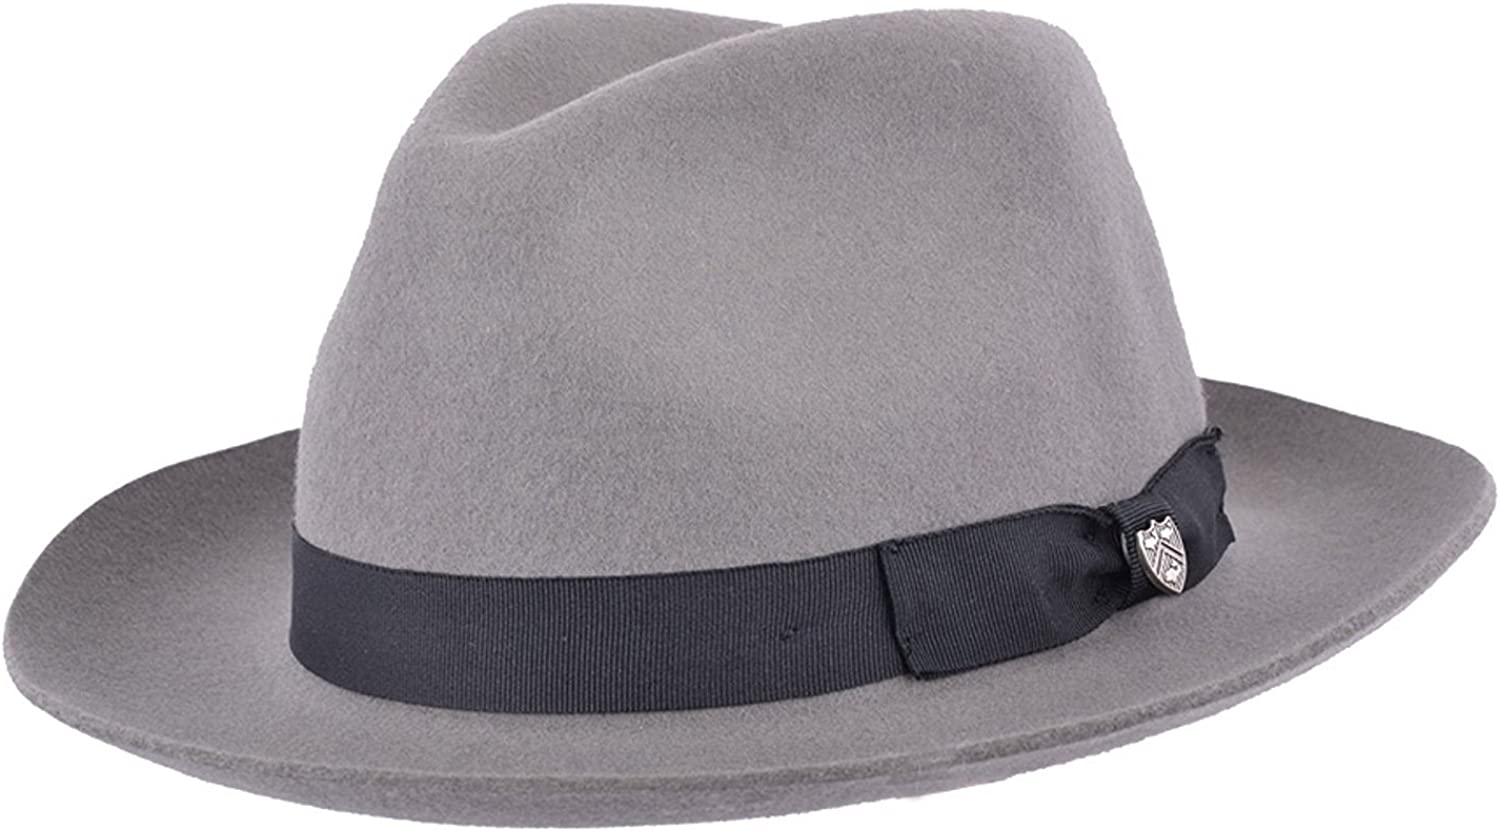 Gladwin Bond Quality Hand Made Fedora Trilby Hat with Matching Band 100/% Wool